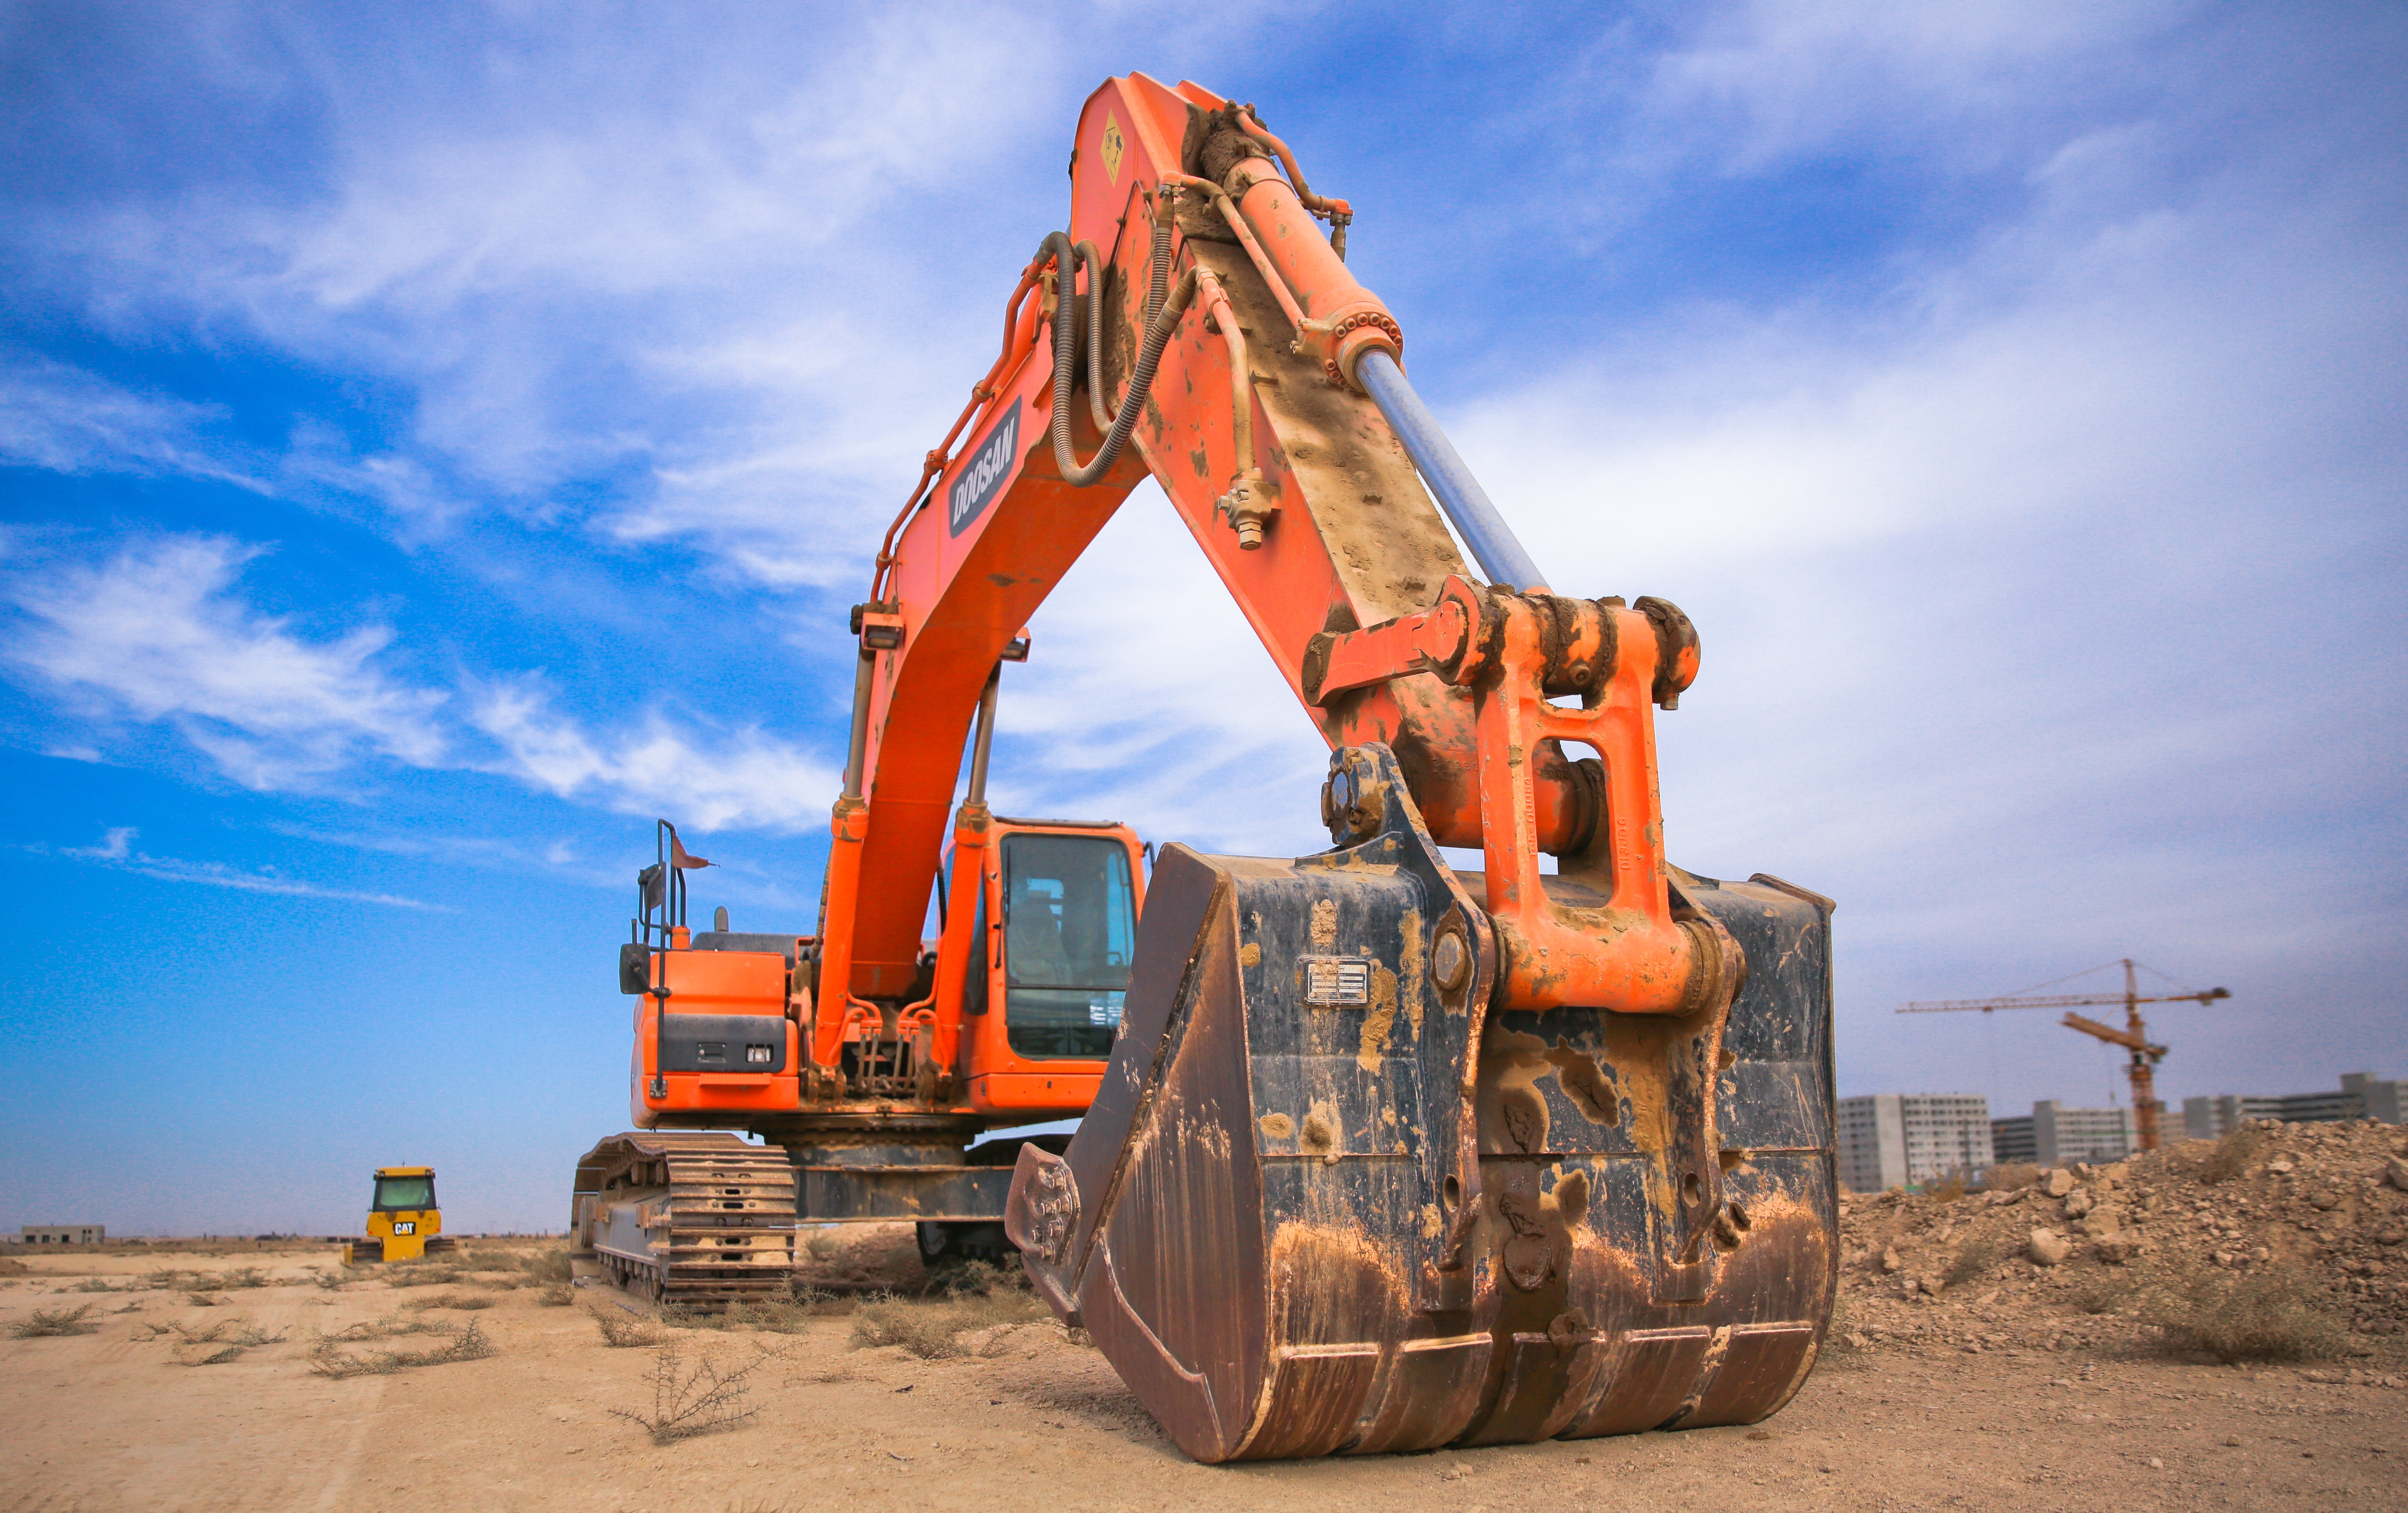 civil-construction-machinery-hire-bulk-haulage-earth-works-business-for-sale-1